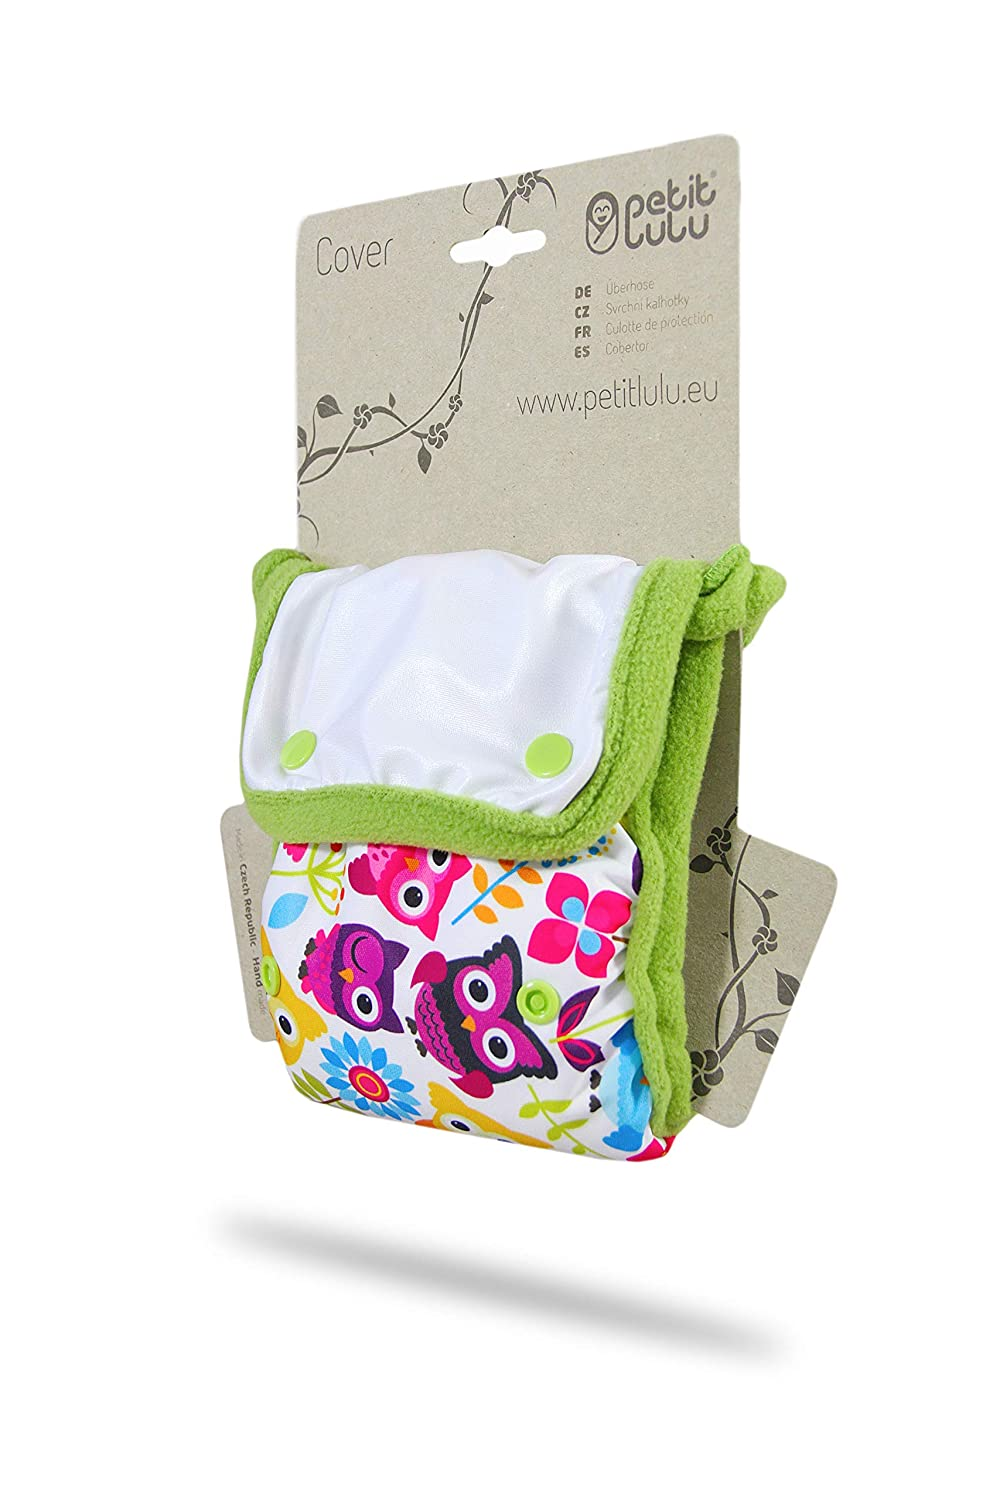 Petit Lulu Minimal Nappy Cover Waterproof Reusable /& Washable Made in Europe Geckos EC Nappy